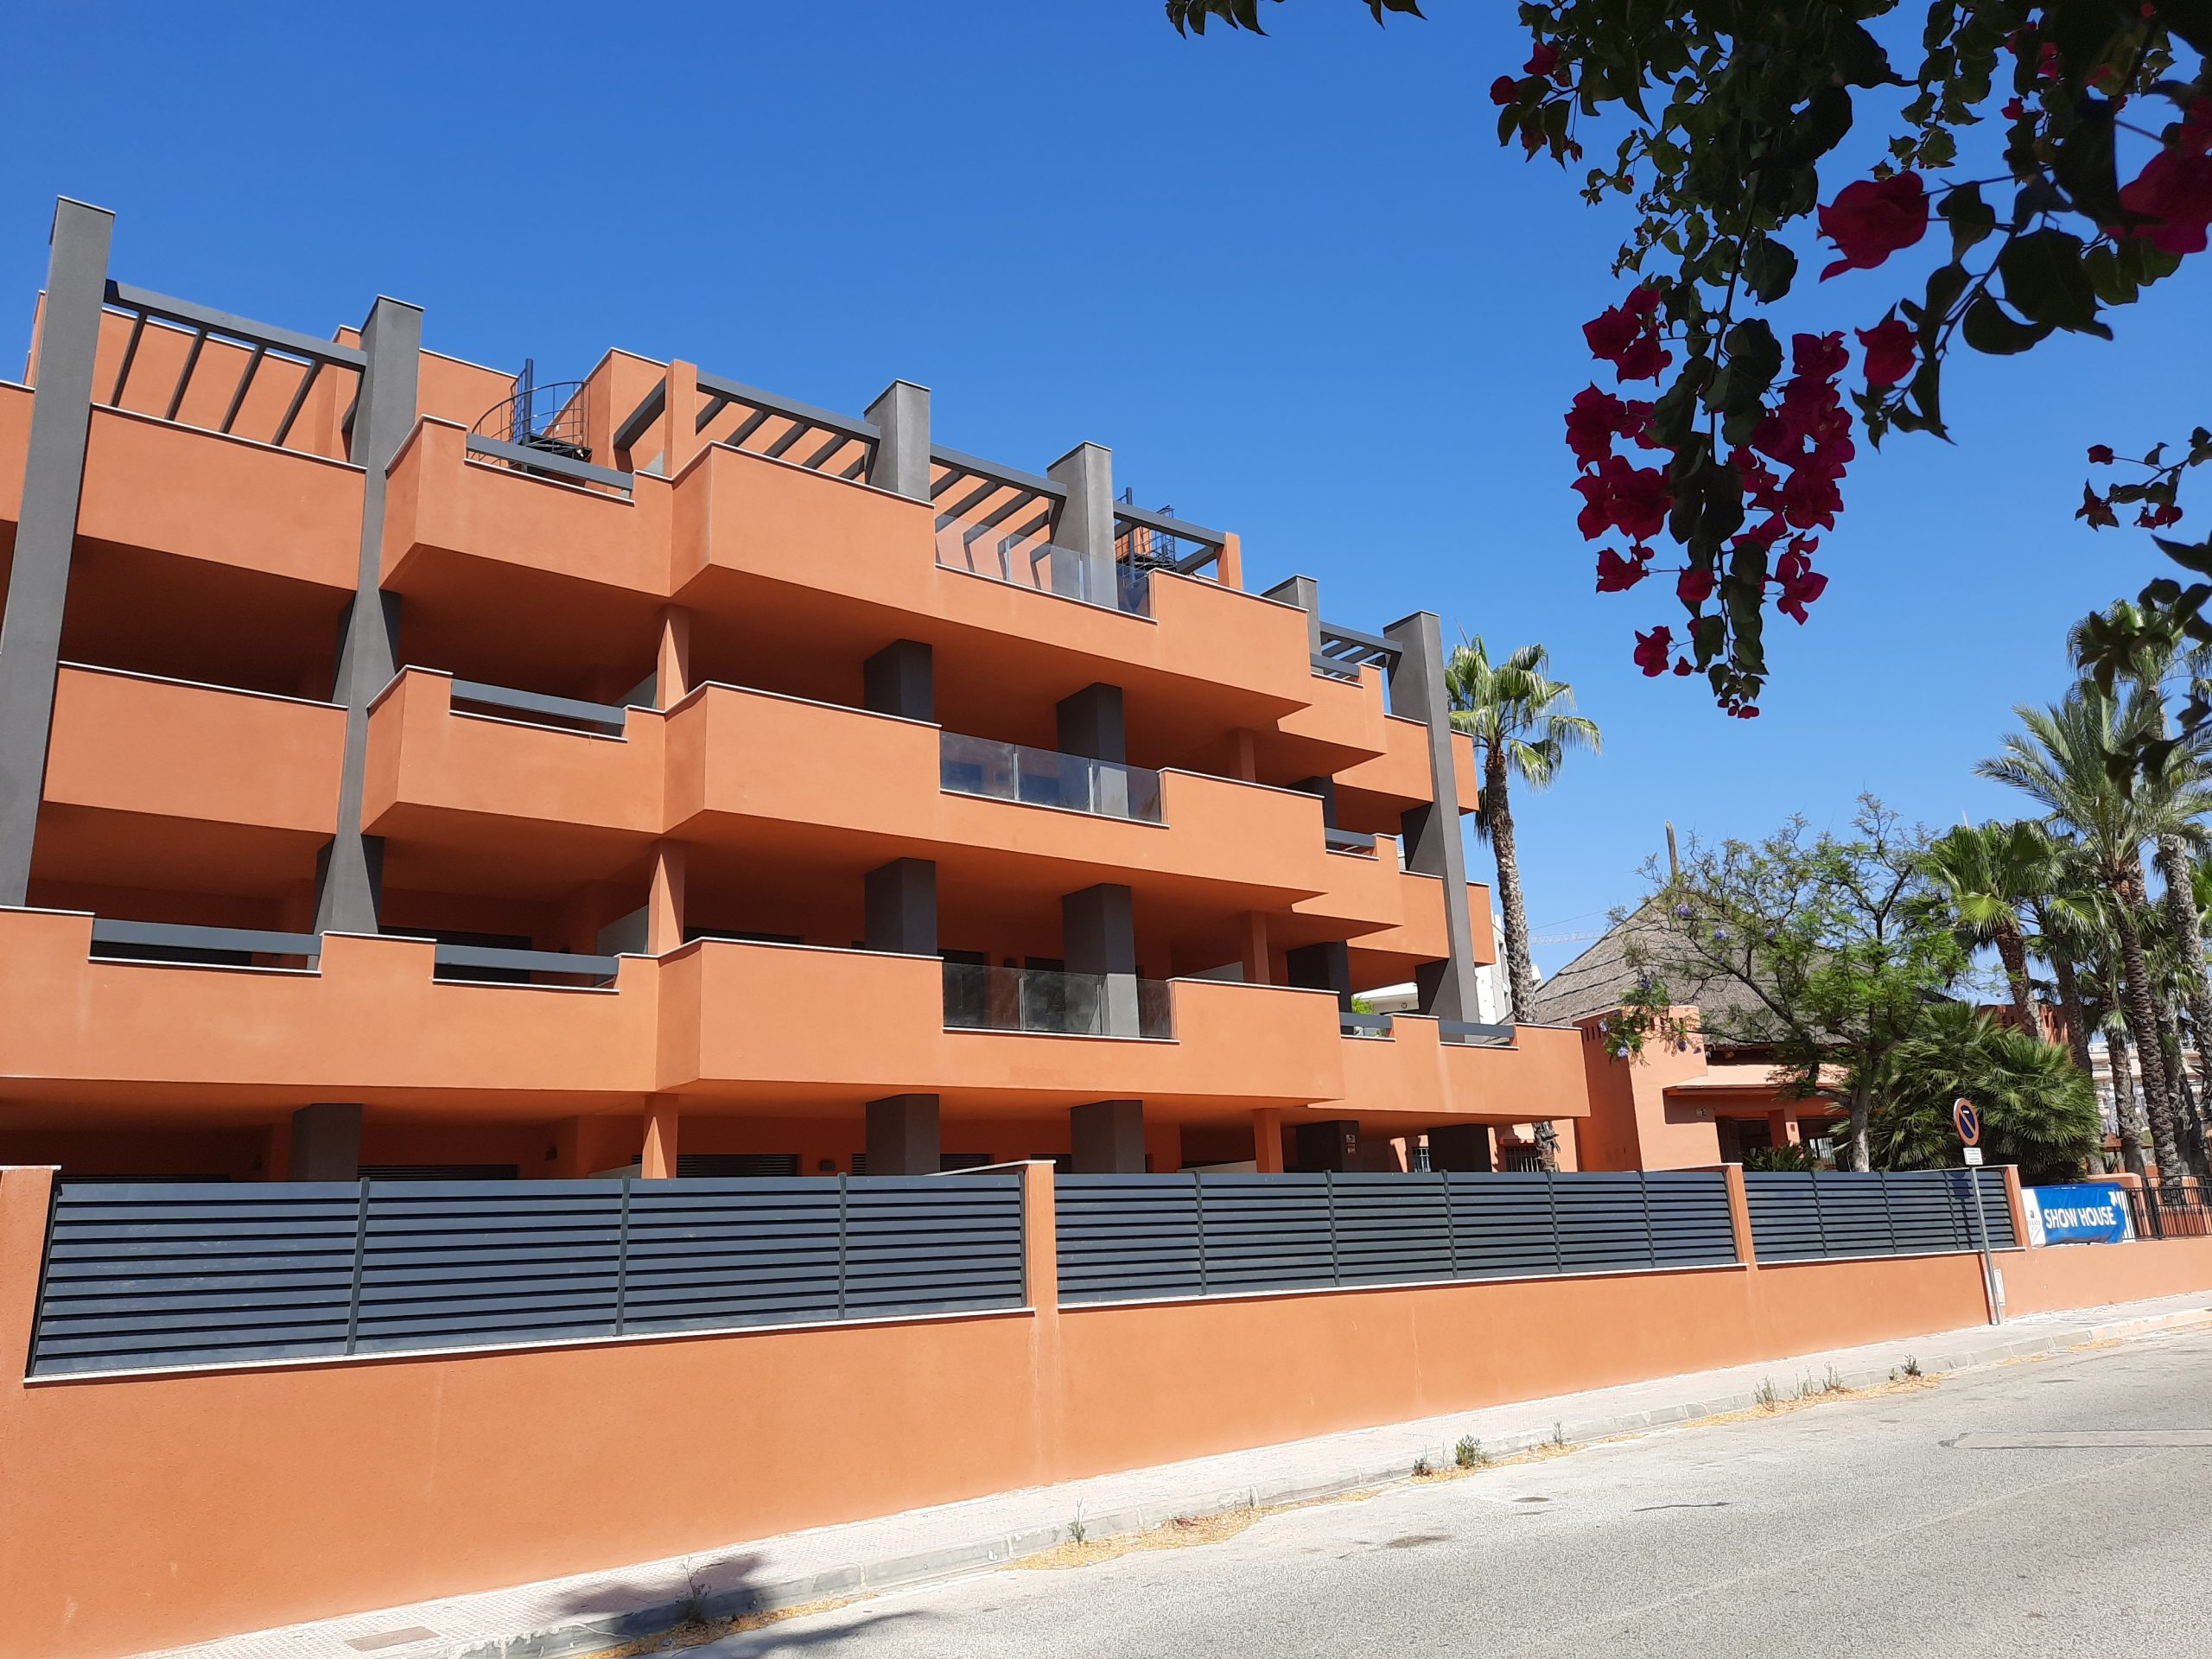 New built apartements in Orihuela Costa